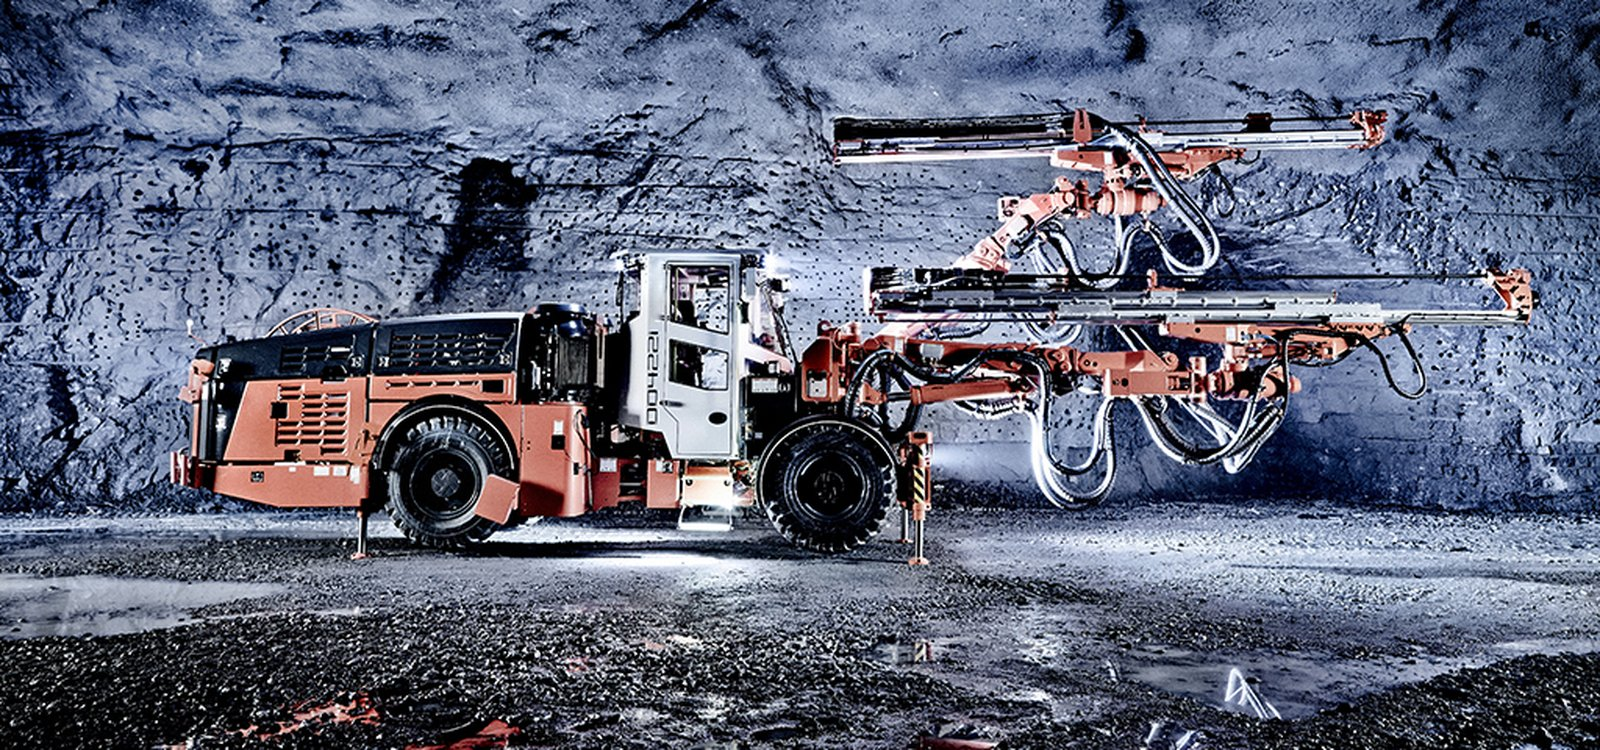 The Sandvik DD422i drill rig offers a wide range of new features to improve excavation of tunnels in hard rock mines.